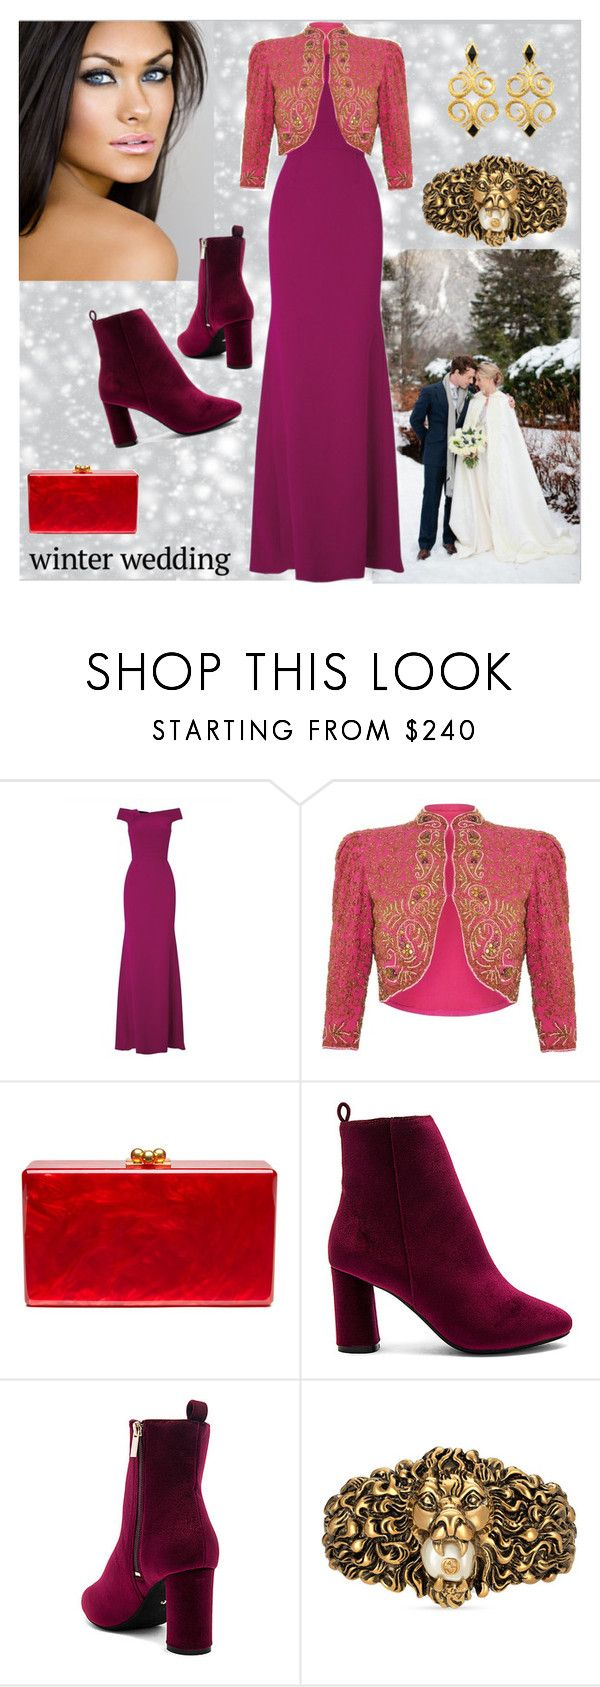 """""""Formal Winter Wedding Guest:  Roland Mouret Gown"""" by bklou ❤ liked on Polyvore featuring Roland Mouret, Edie Parker, Raye and Gucci"""